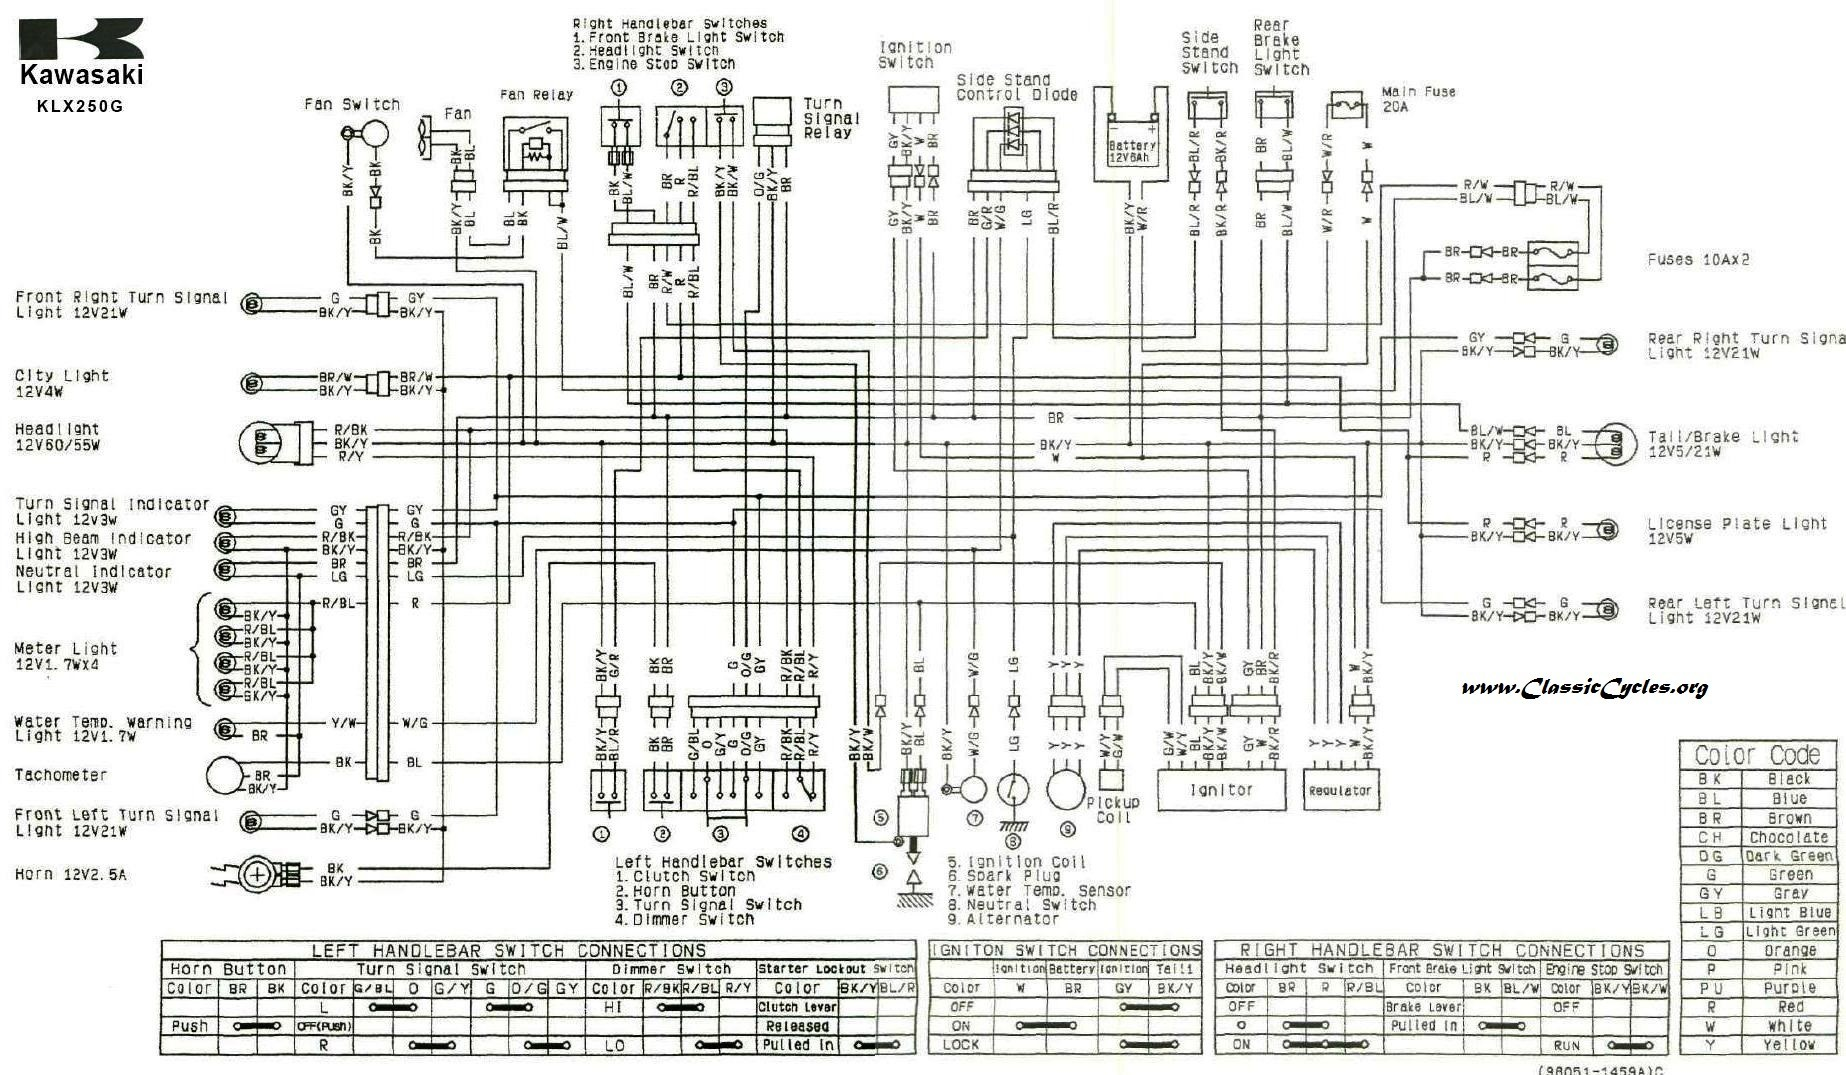 Kawasaki Bayou 220 Engine Diagram Wiring Diagram Kawasaki Bayou 220 Best Kawasaki Bayou 300 Wiring Of Kawasaki Bayou 220 Engine Diagram Wiring Diagram Archives Page 69 Of 71 Balnearios